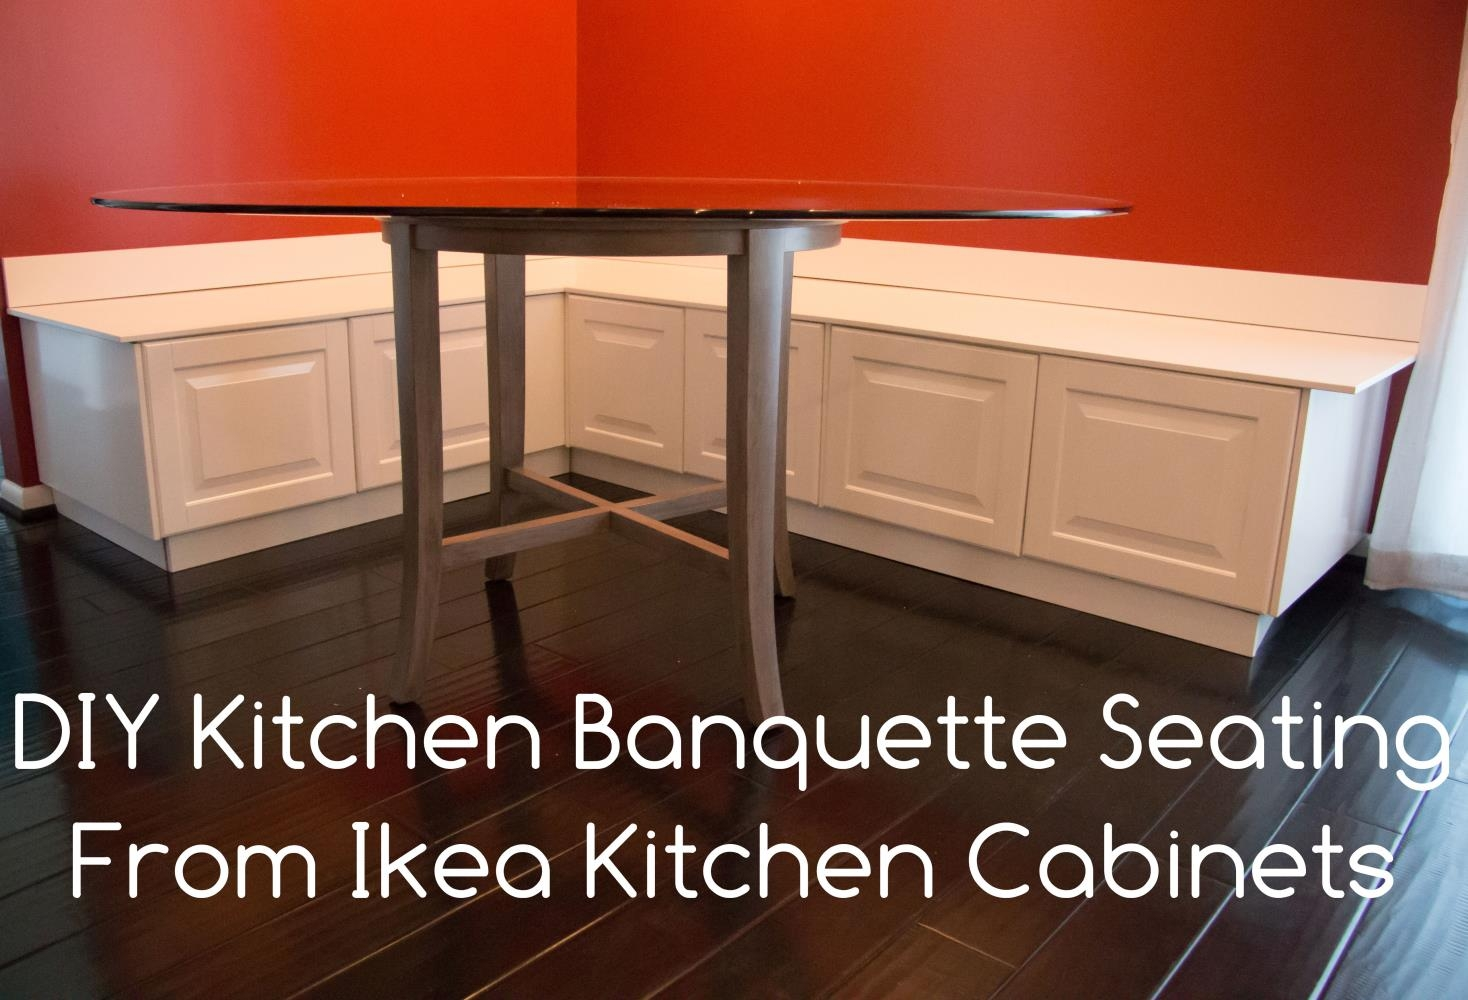 DIY Kitchen Seating Banquette Bench from Ikea Cabinets